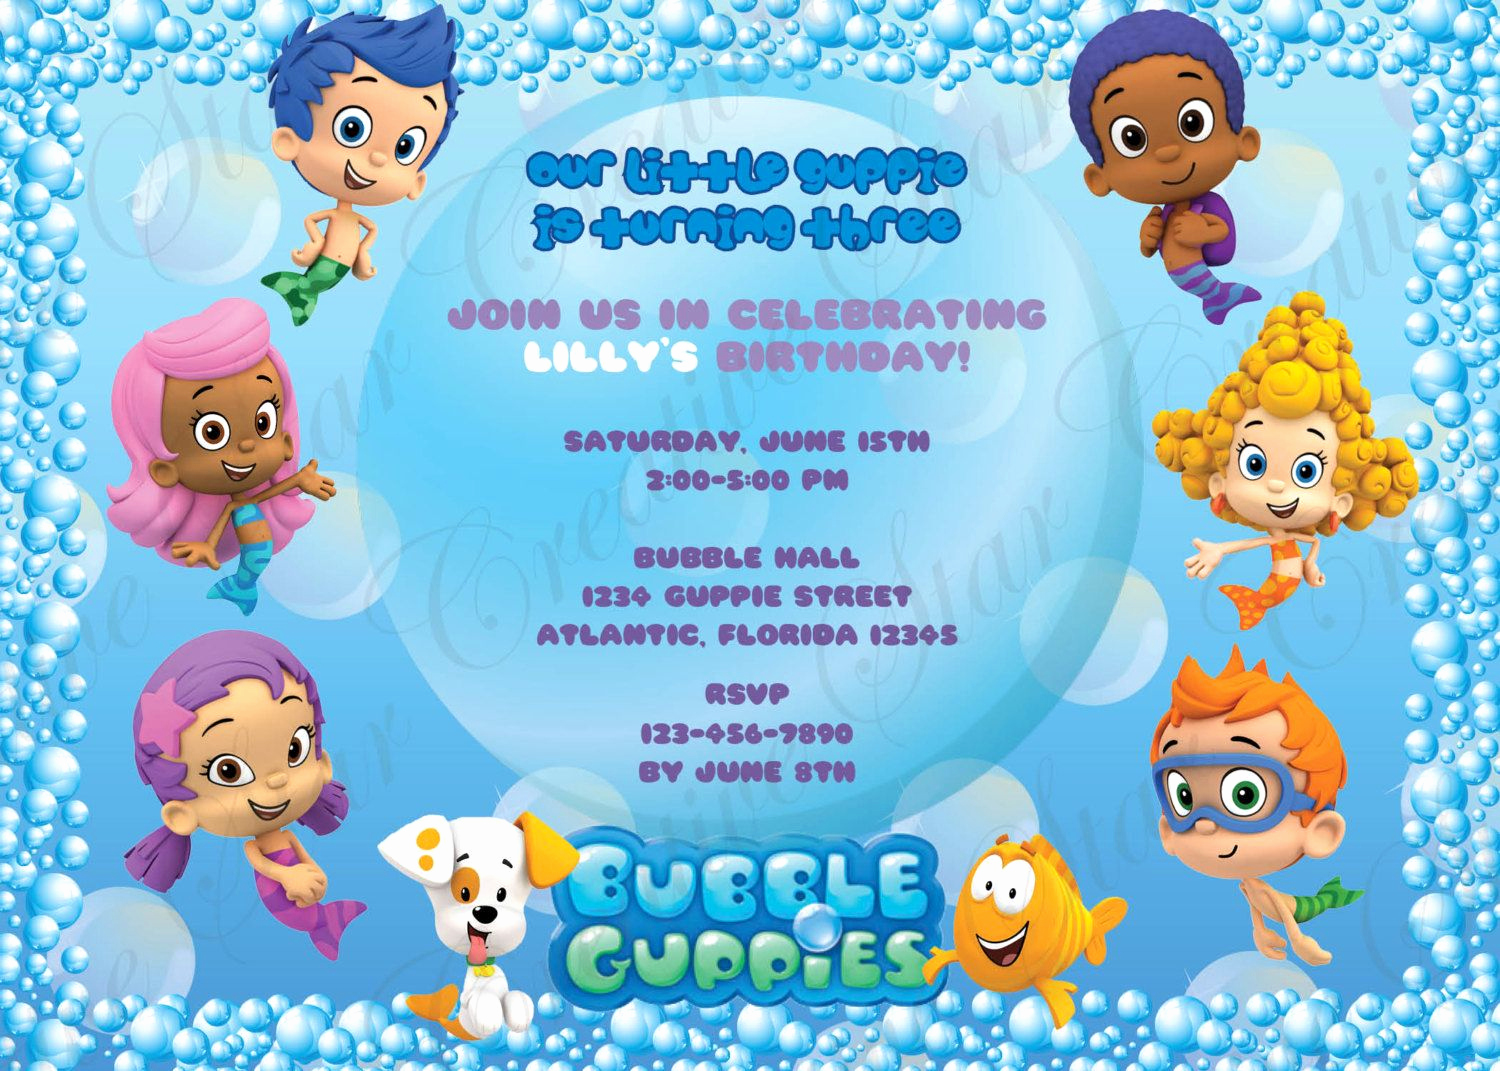 Bubble Guppies Invitation Template Free Unique Bubble Guppies Birthday Invitations Digital Print File Diy